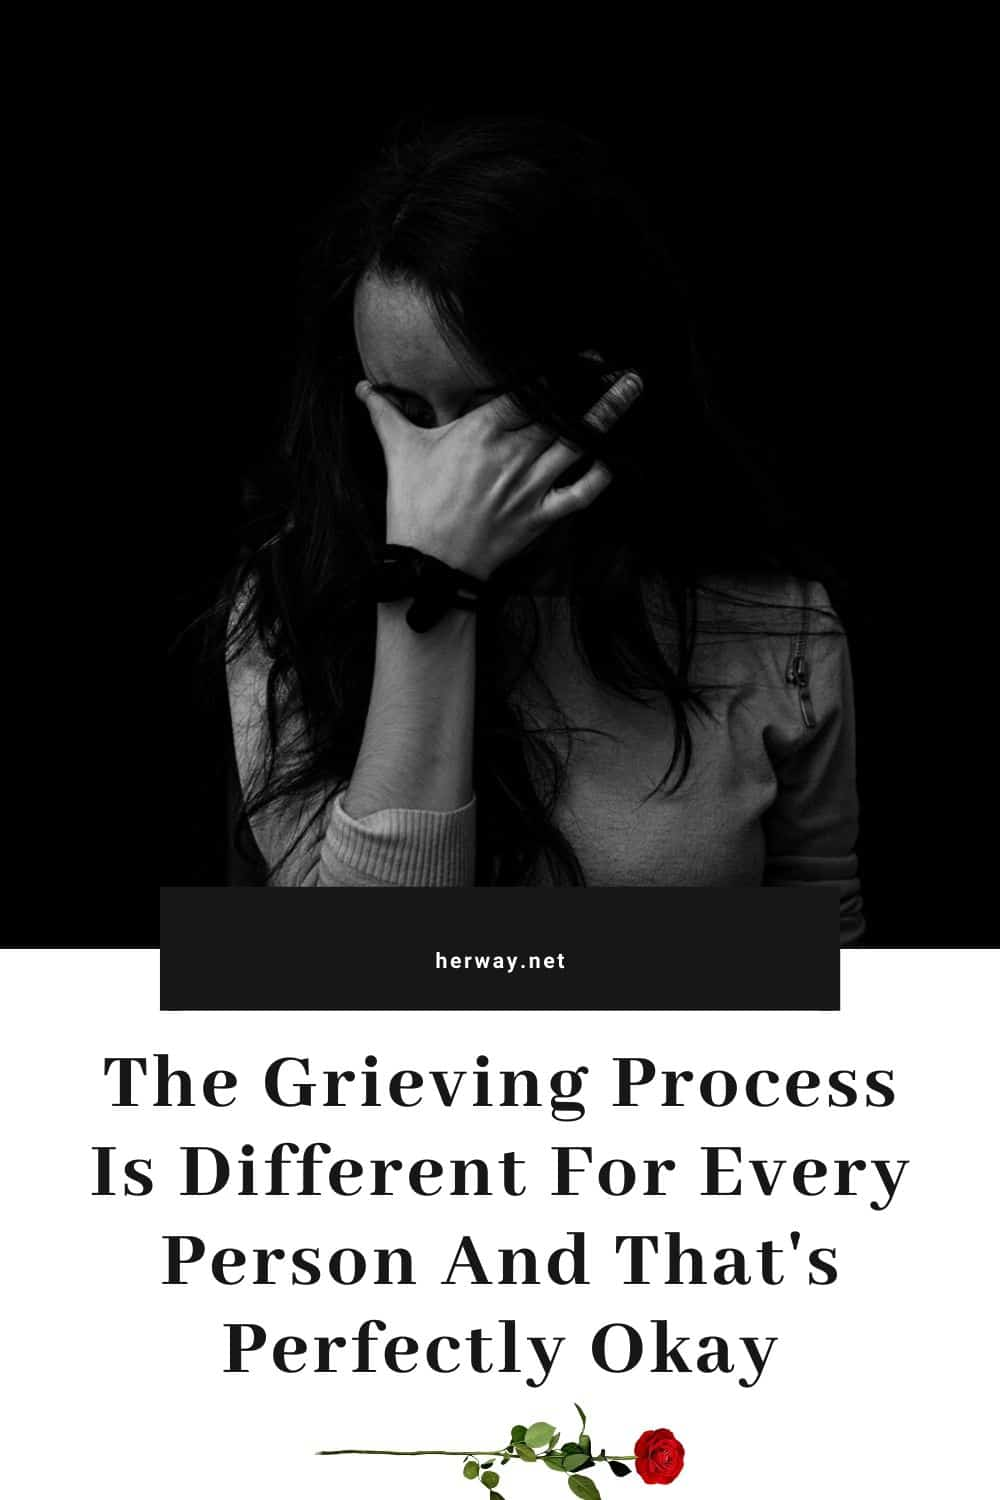 The Grieving Process Is Different For Every Person And That's Perfectly Okay